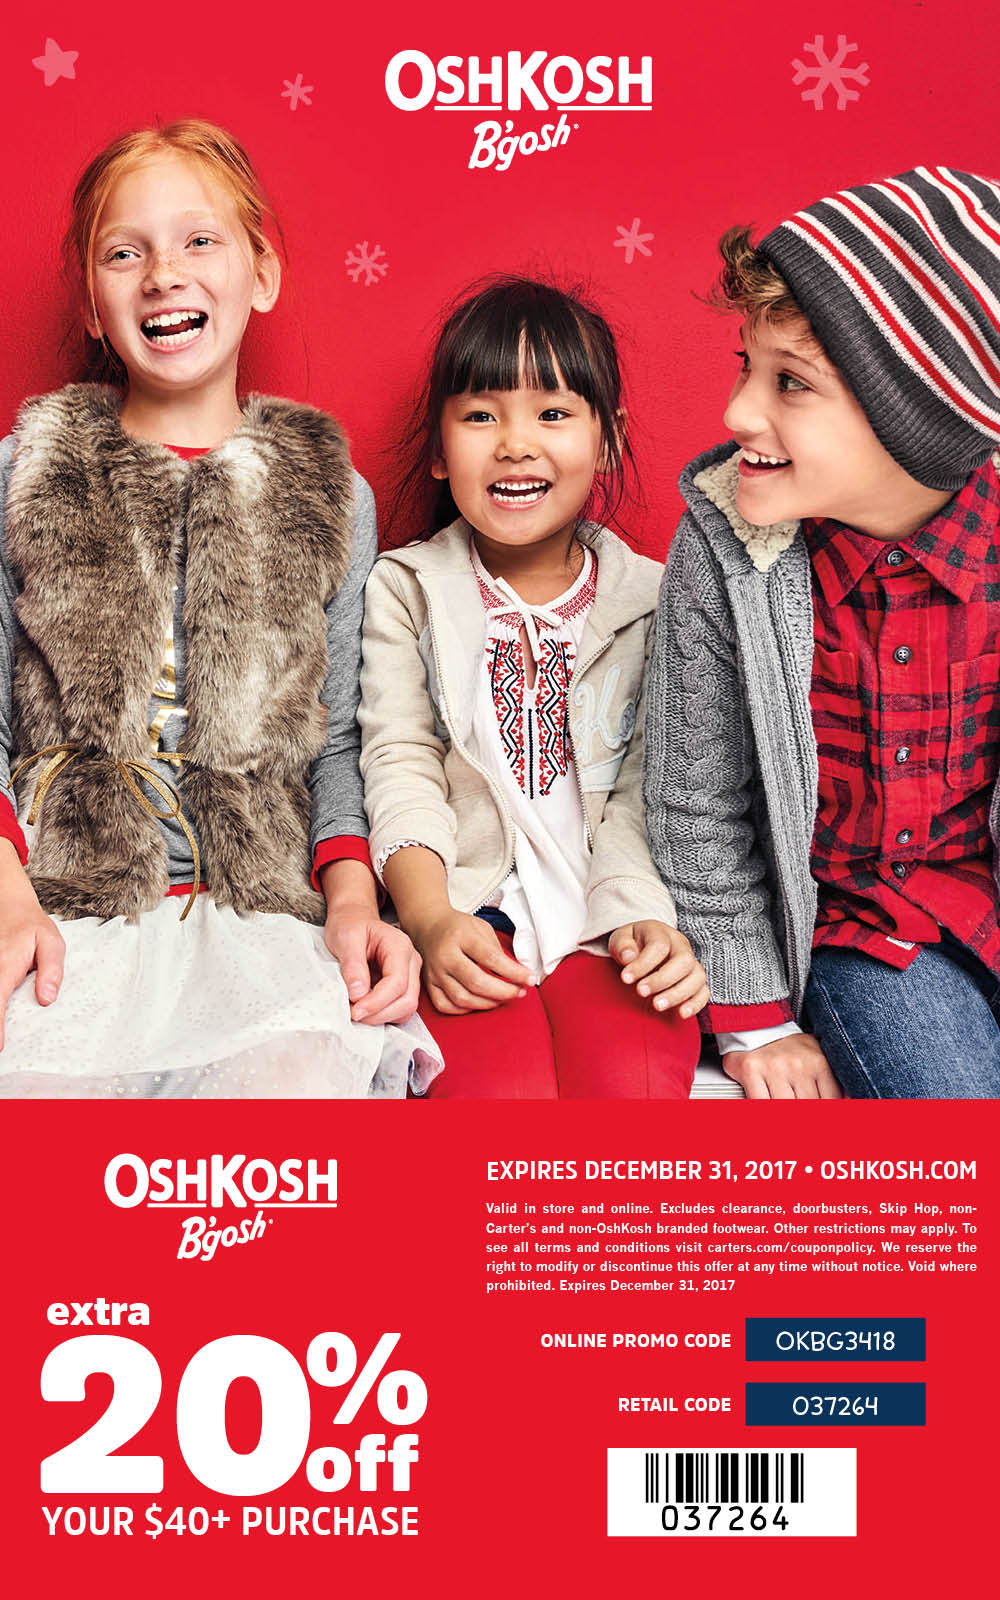 OshKosh Bgosh holiday savings coupon - Mommy Scene